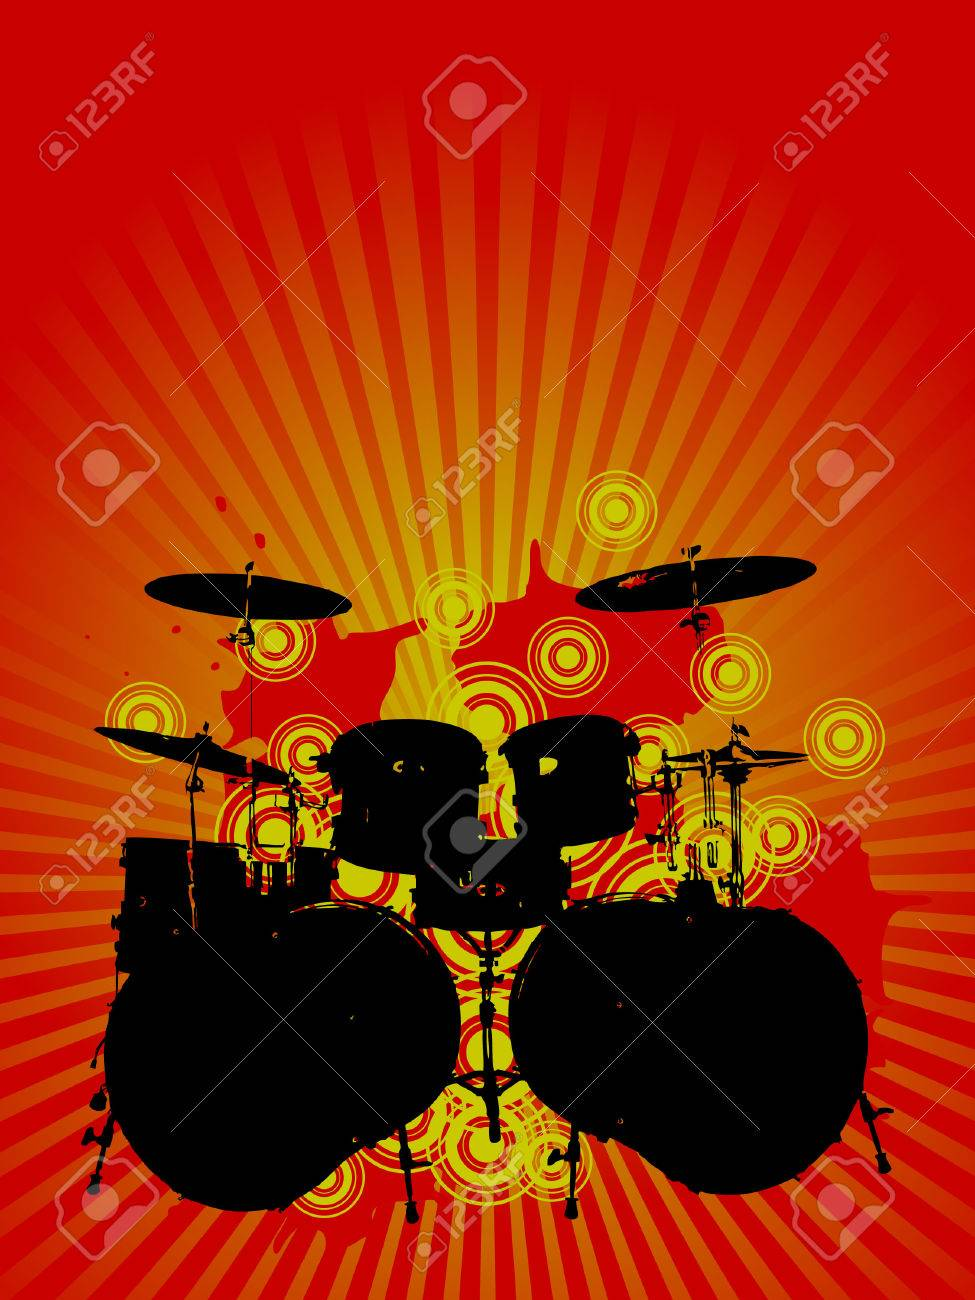 Music design for use as a background. Available in jpeg and eps8 formats. - 5548636